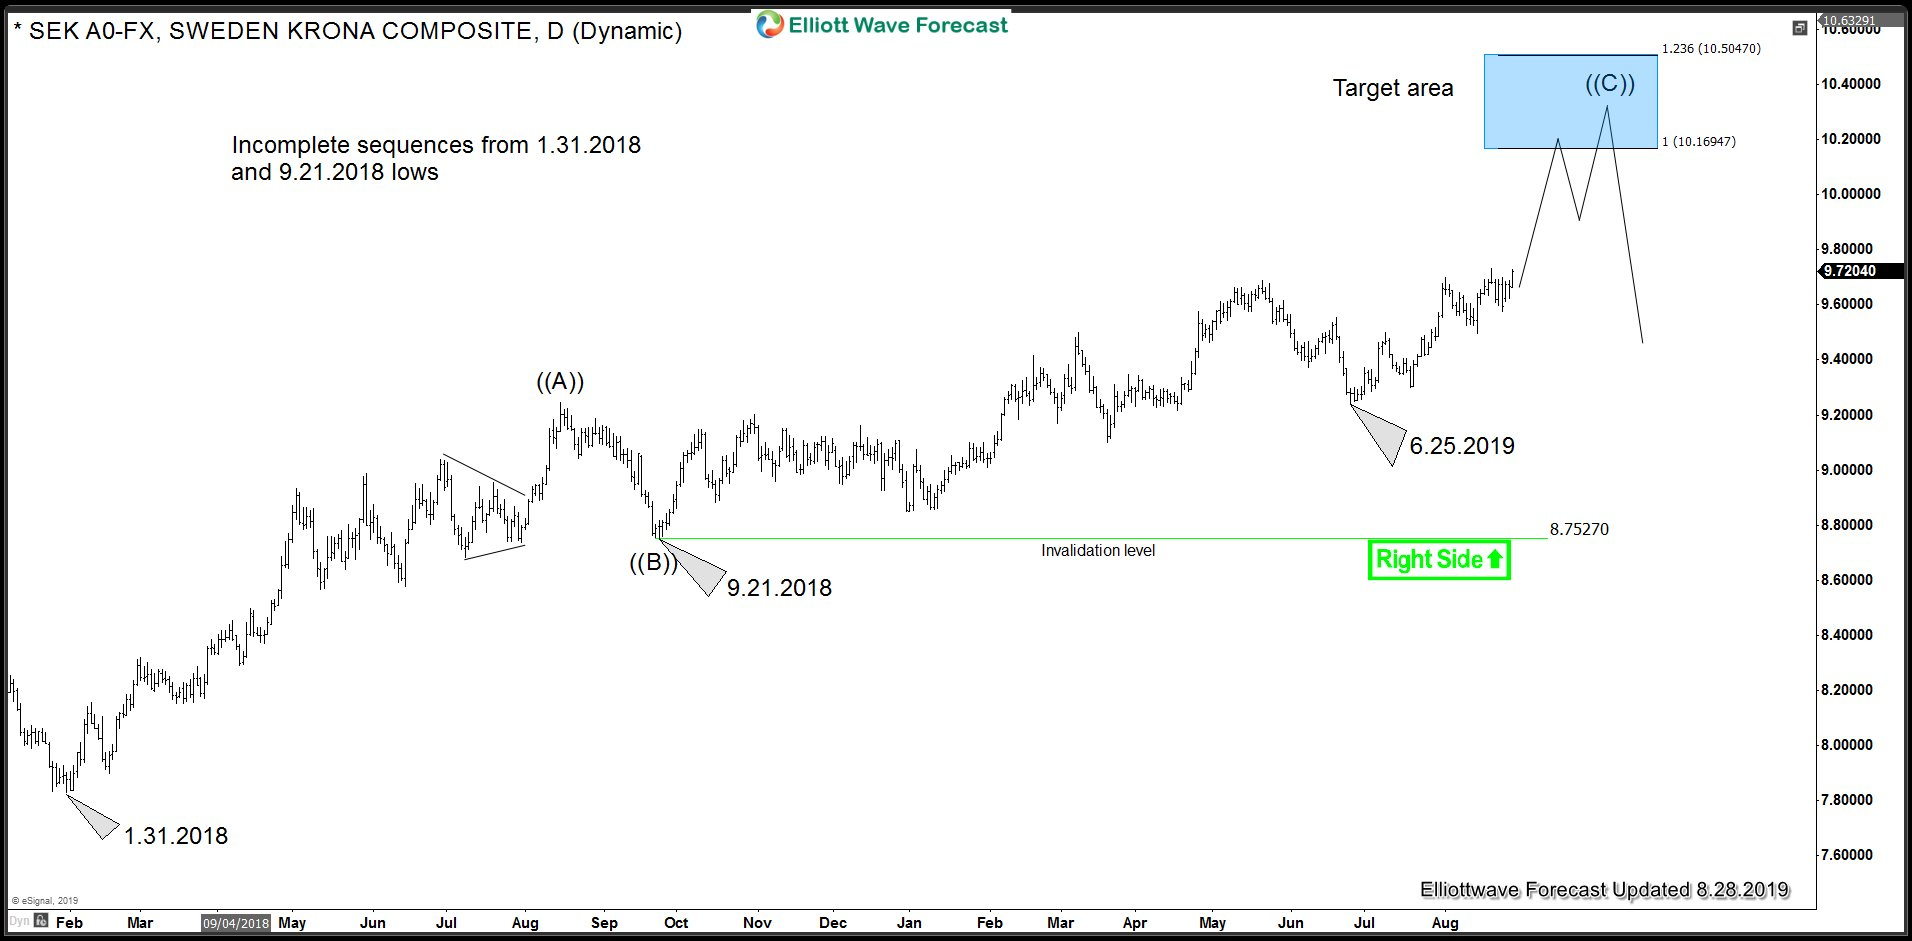 Swedish Krona (USDSEK) Cycles and Sequence from 1.31.2018